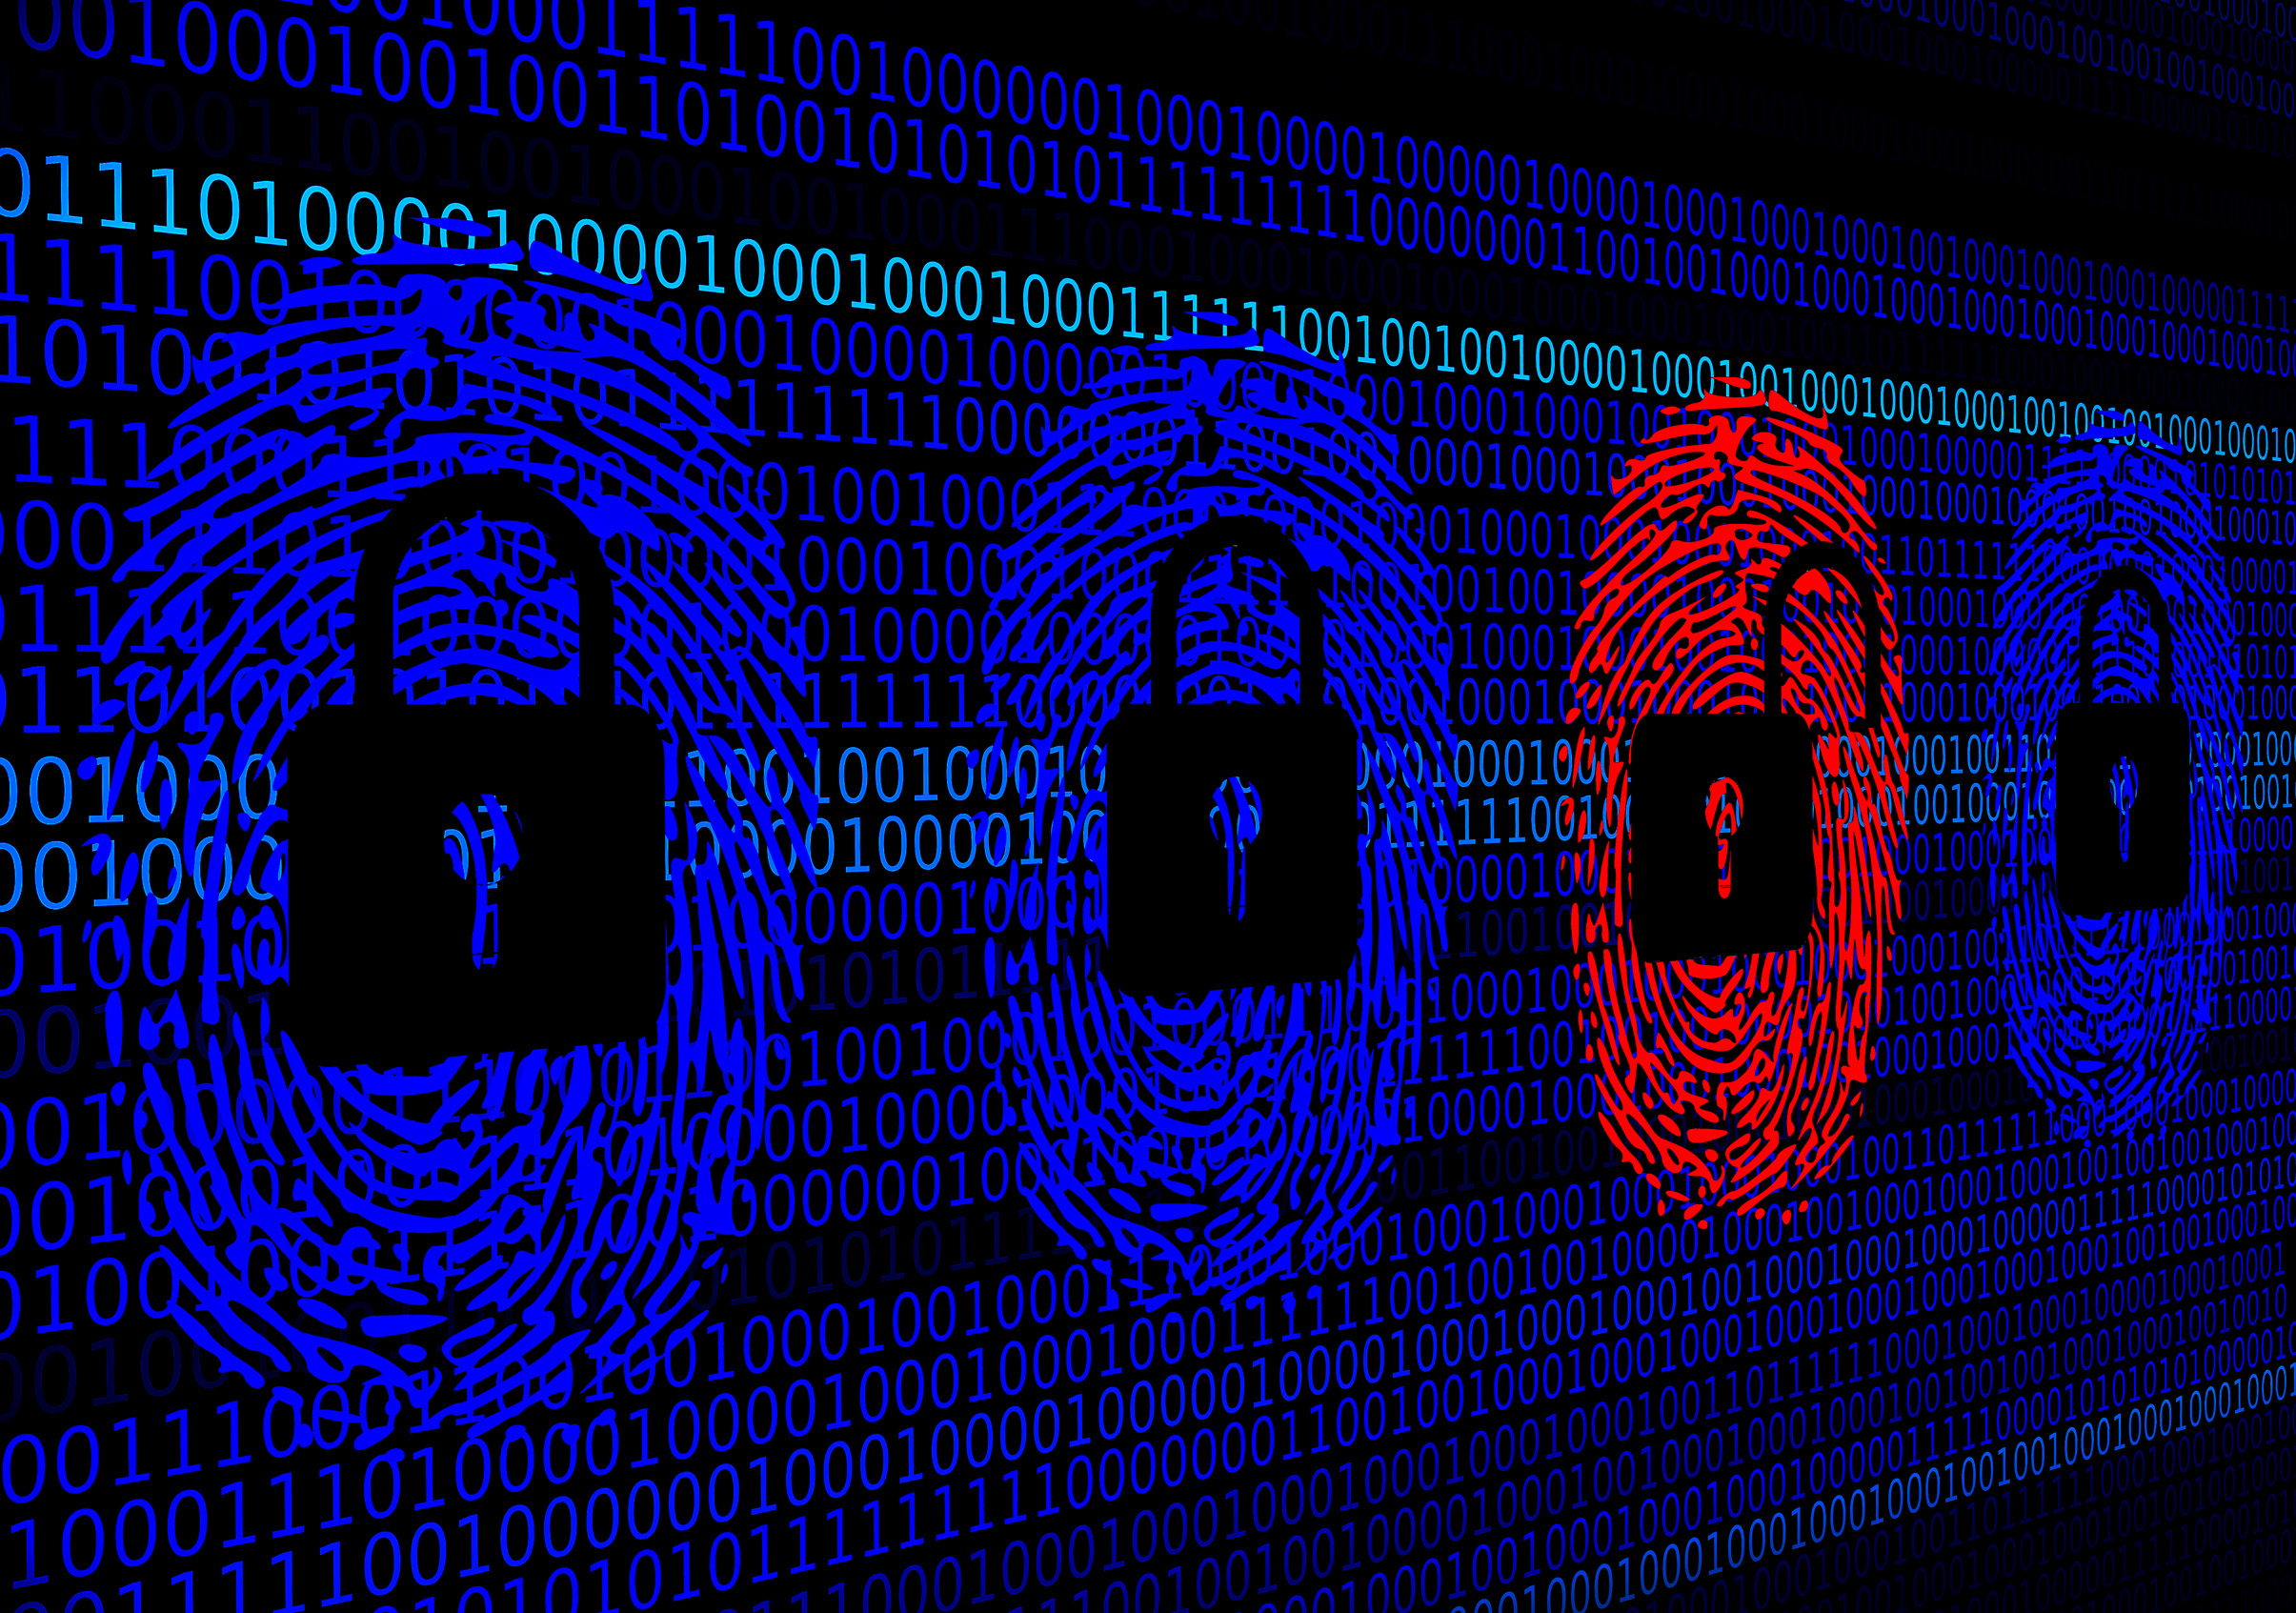 Cybersecurity concept - Open and closed locks with digital fingerprints from an hacker